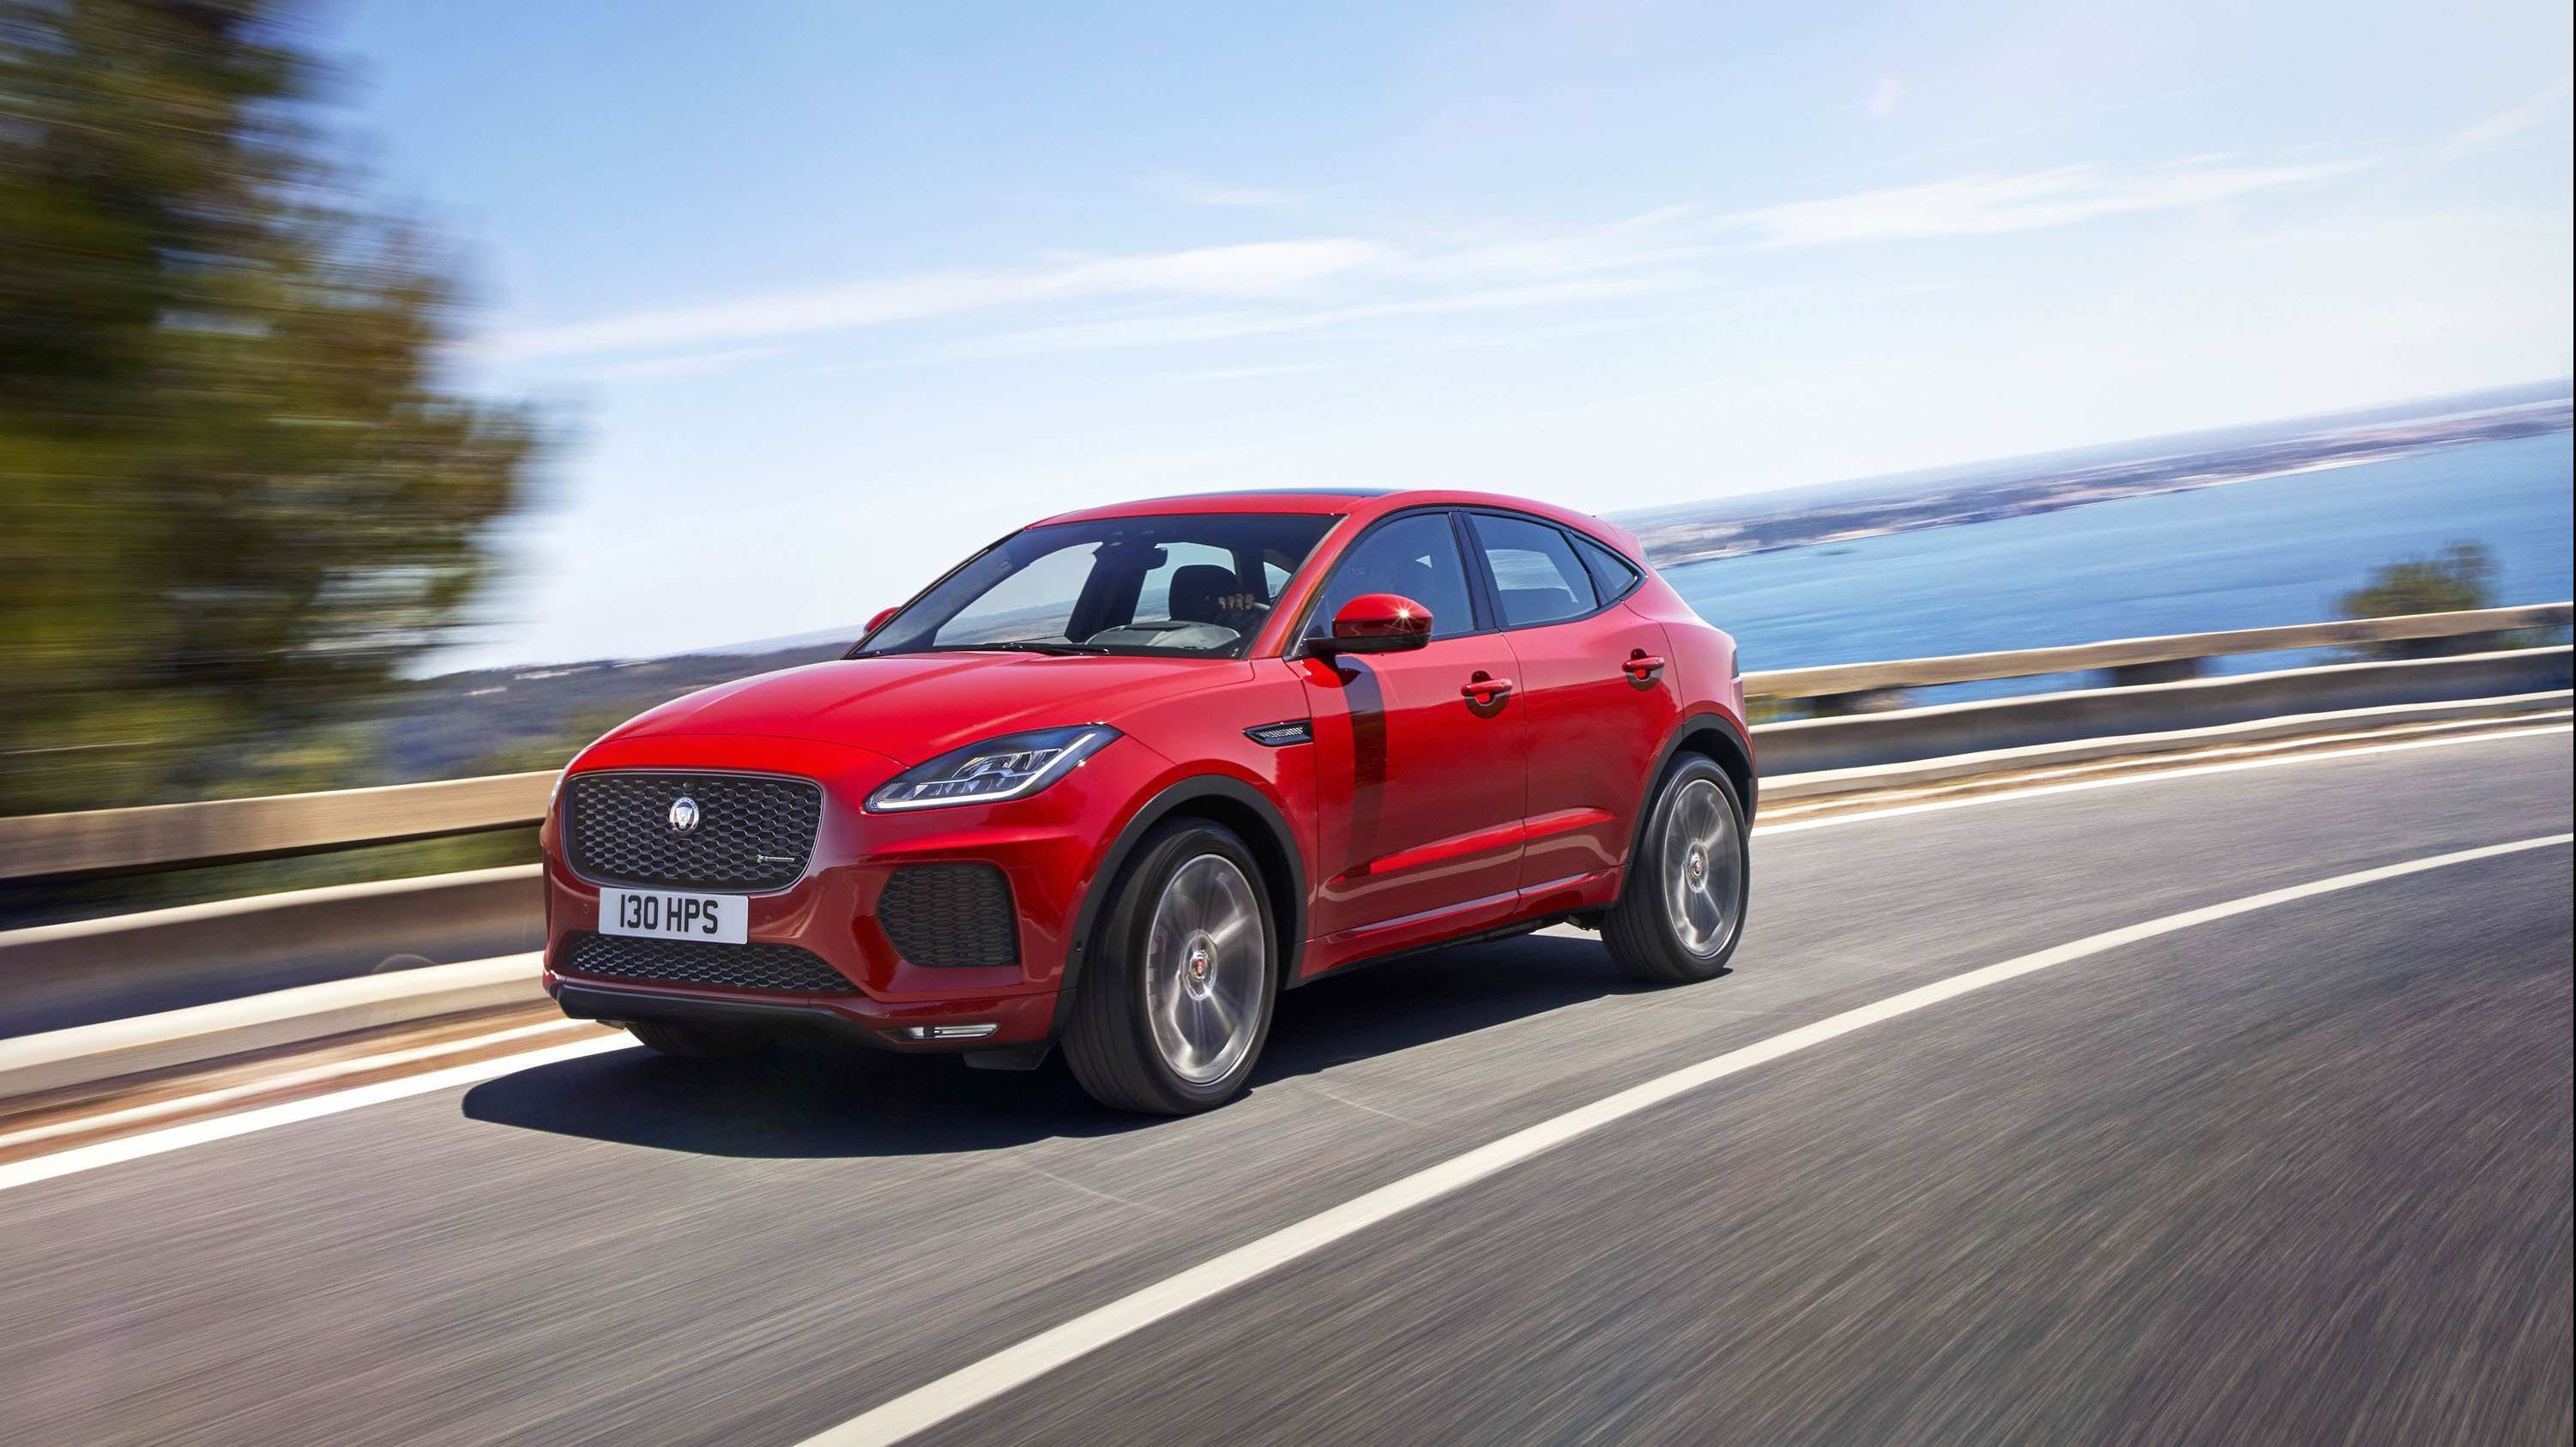 82 All New 2020 Jaguar Xq Crossover Prices